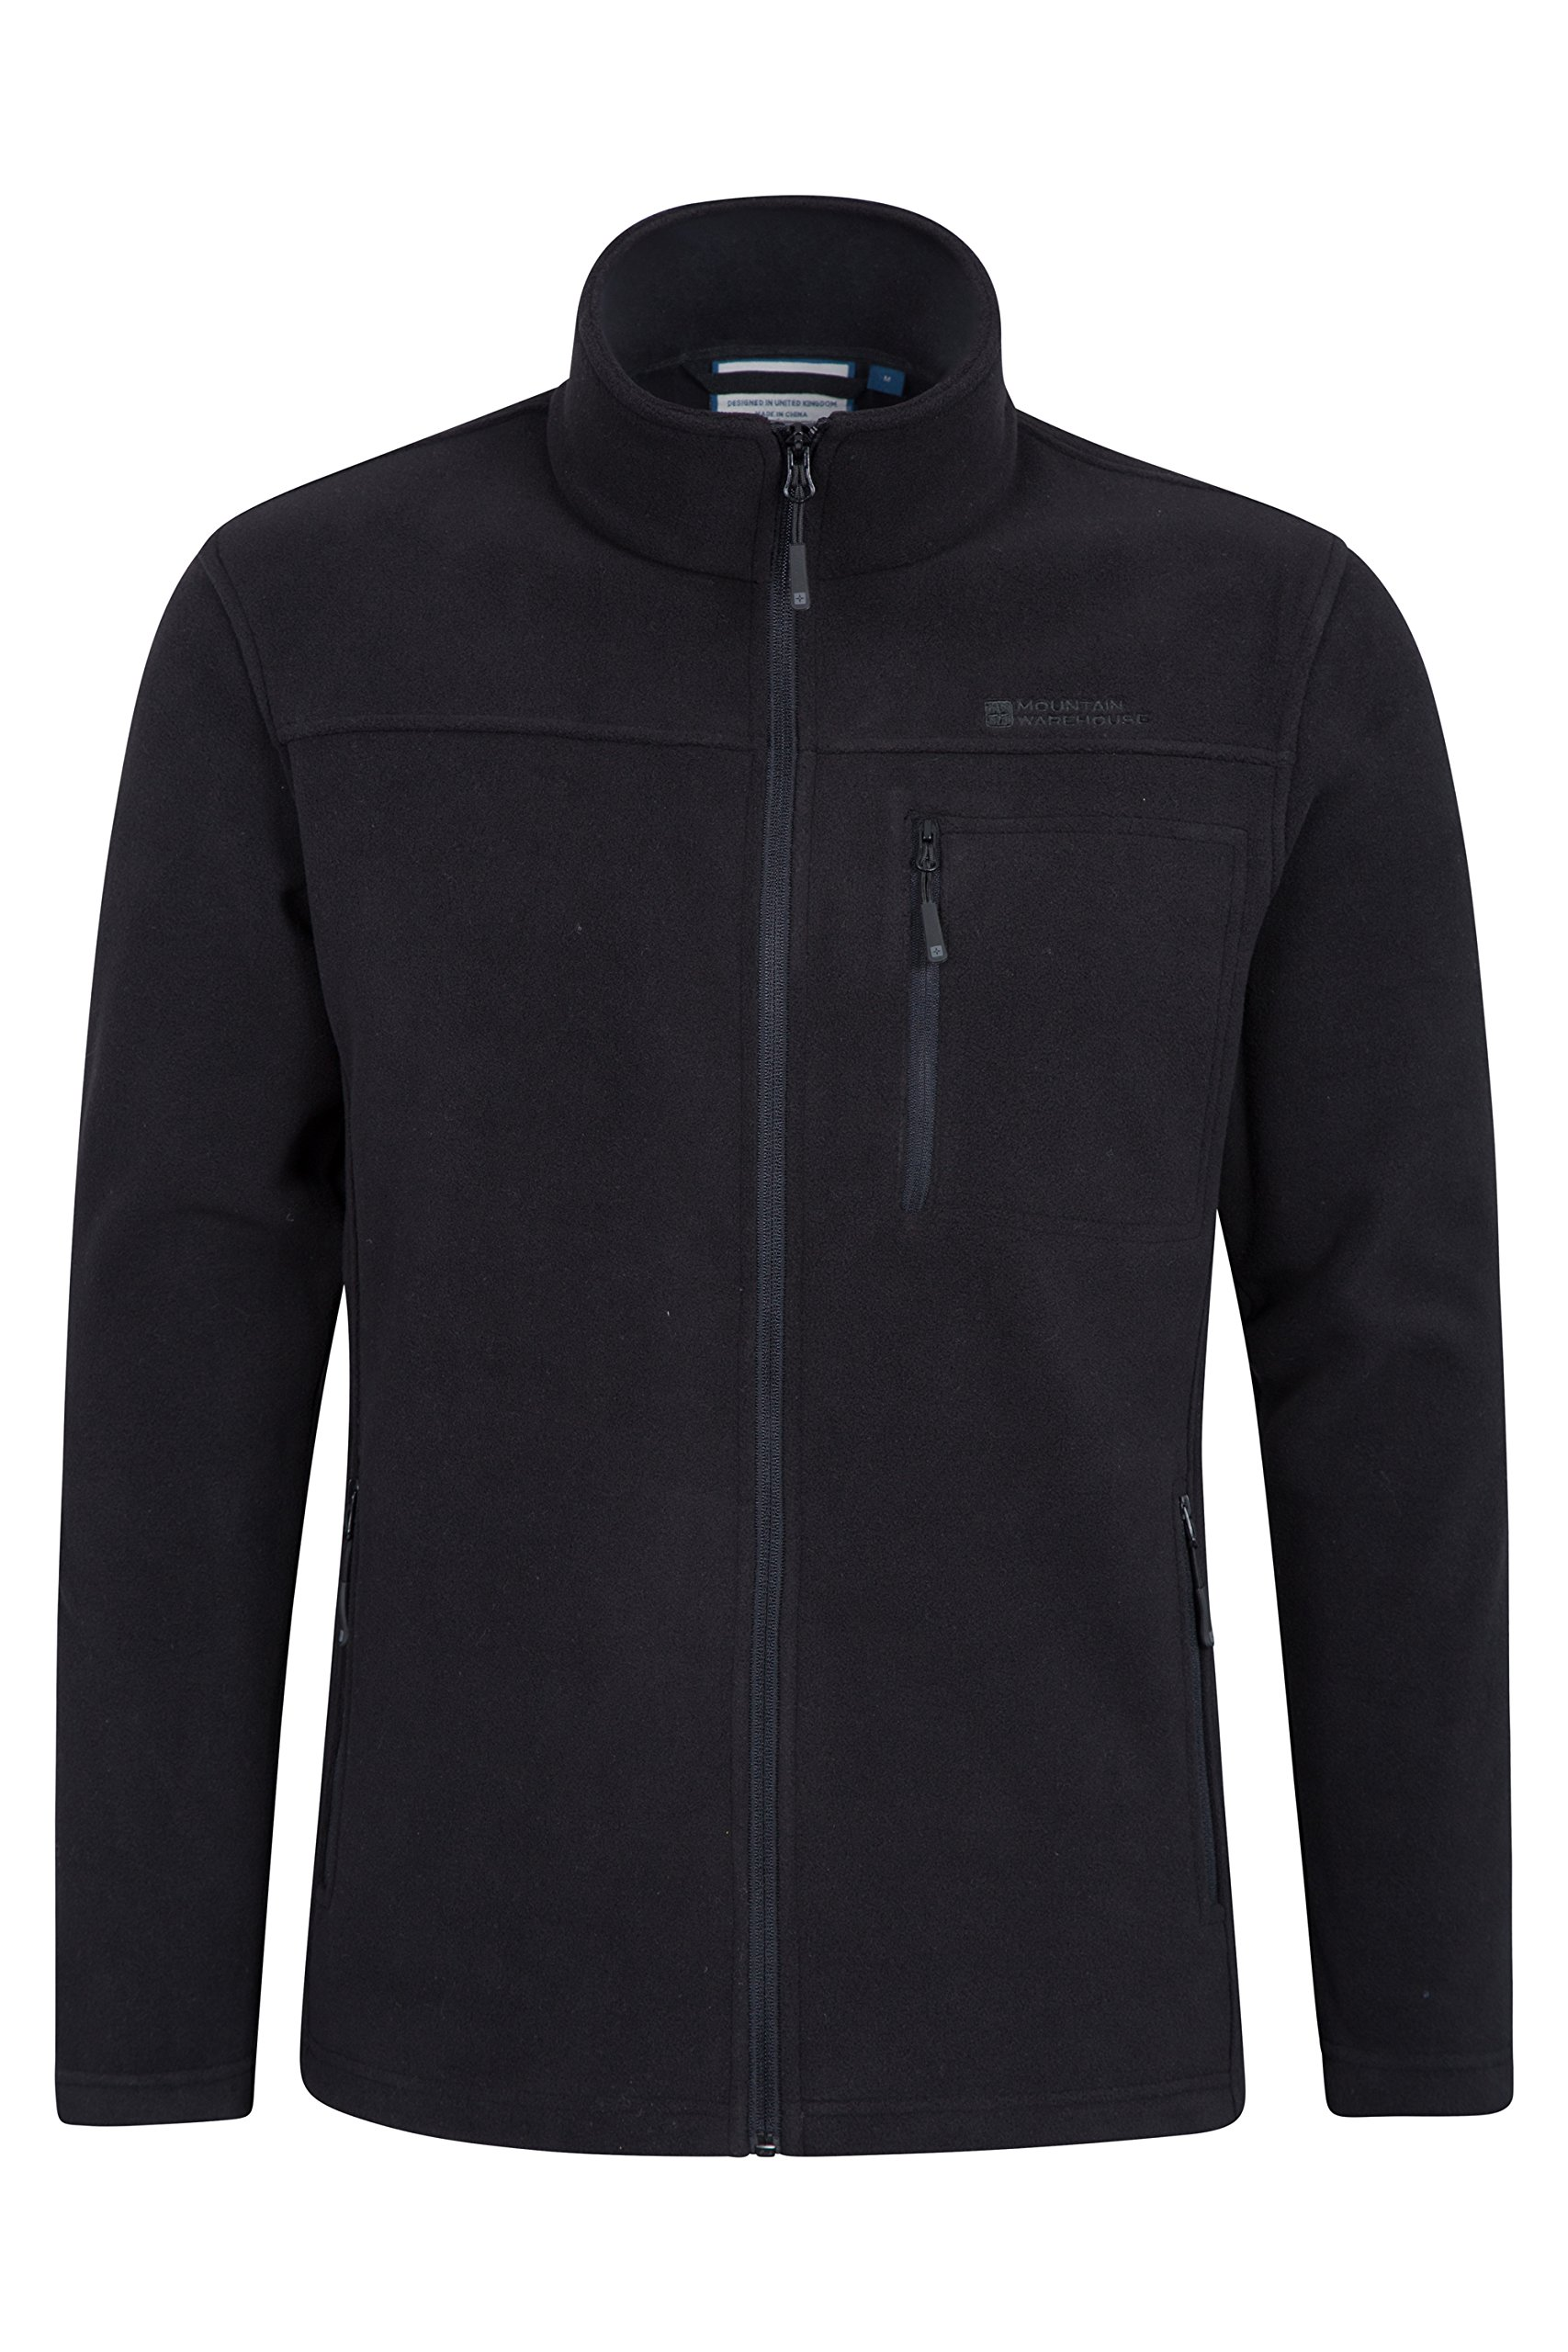 Mountain Warehouse Buchanan Mens Fleece – Warm Jacket, Quick Drying Sweater, Breathable Pullover, Chest Pocket -Ideal…